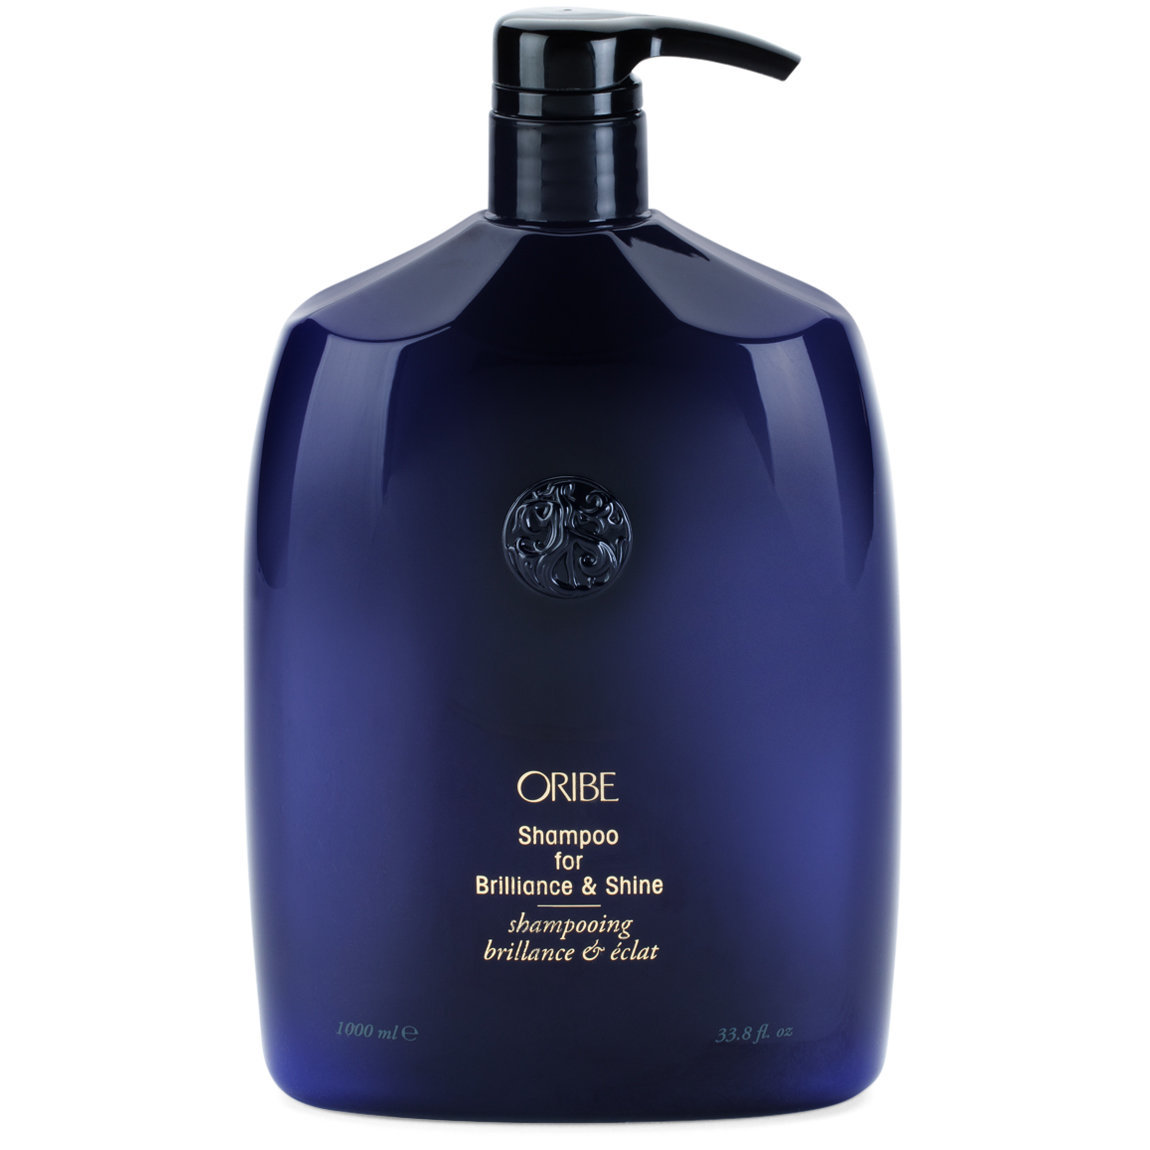 Oribe Shampoo Shampoo For Brilliance Shine